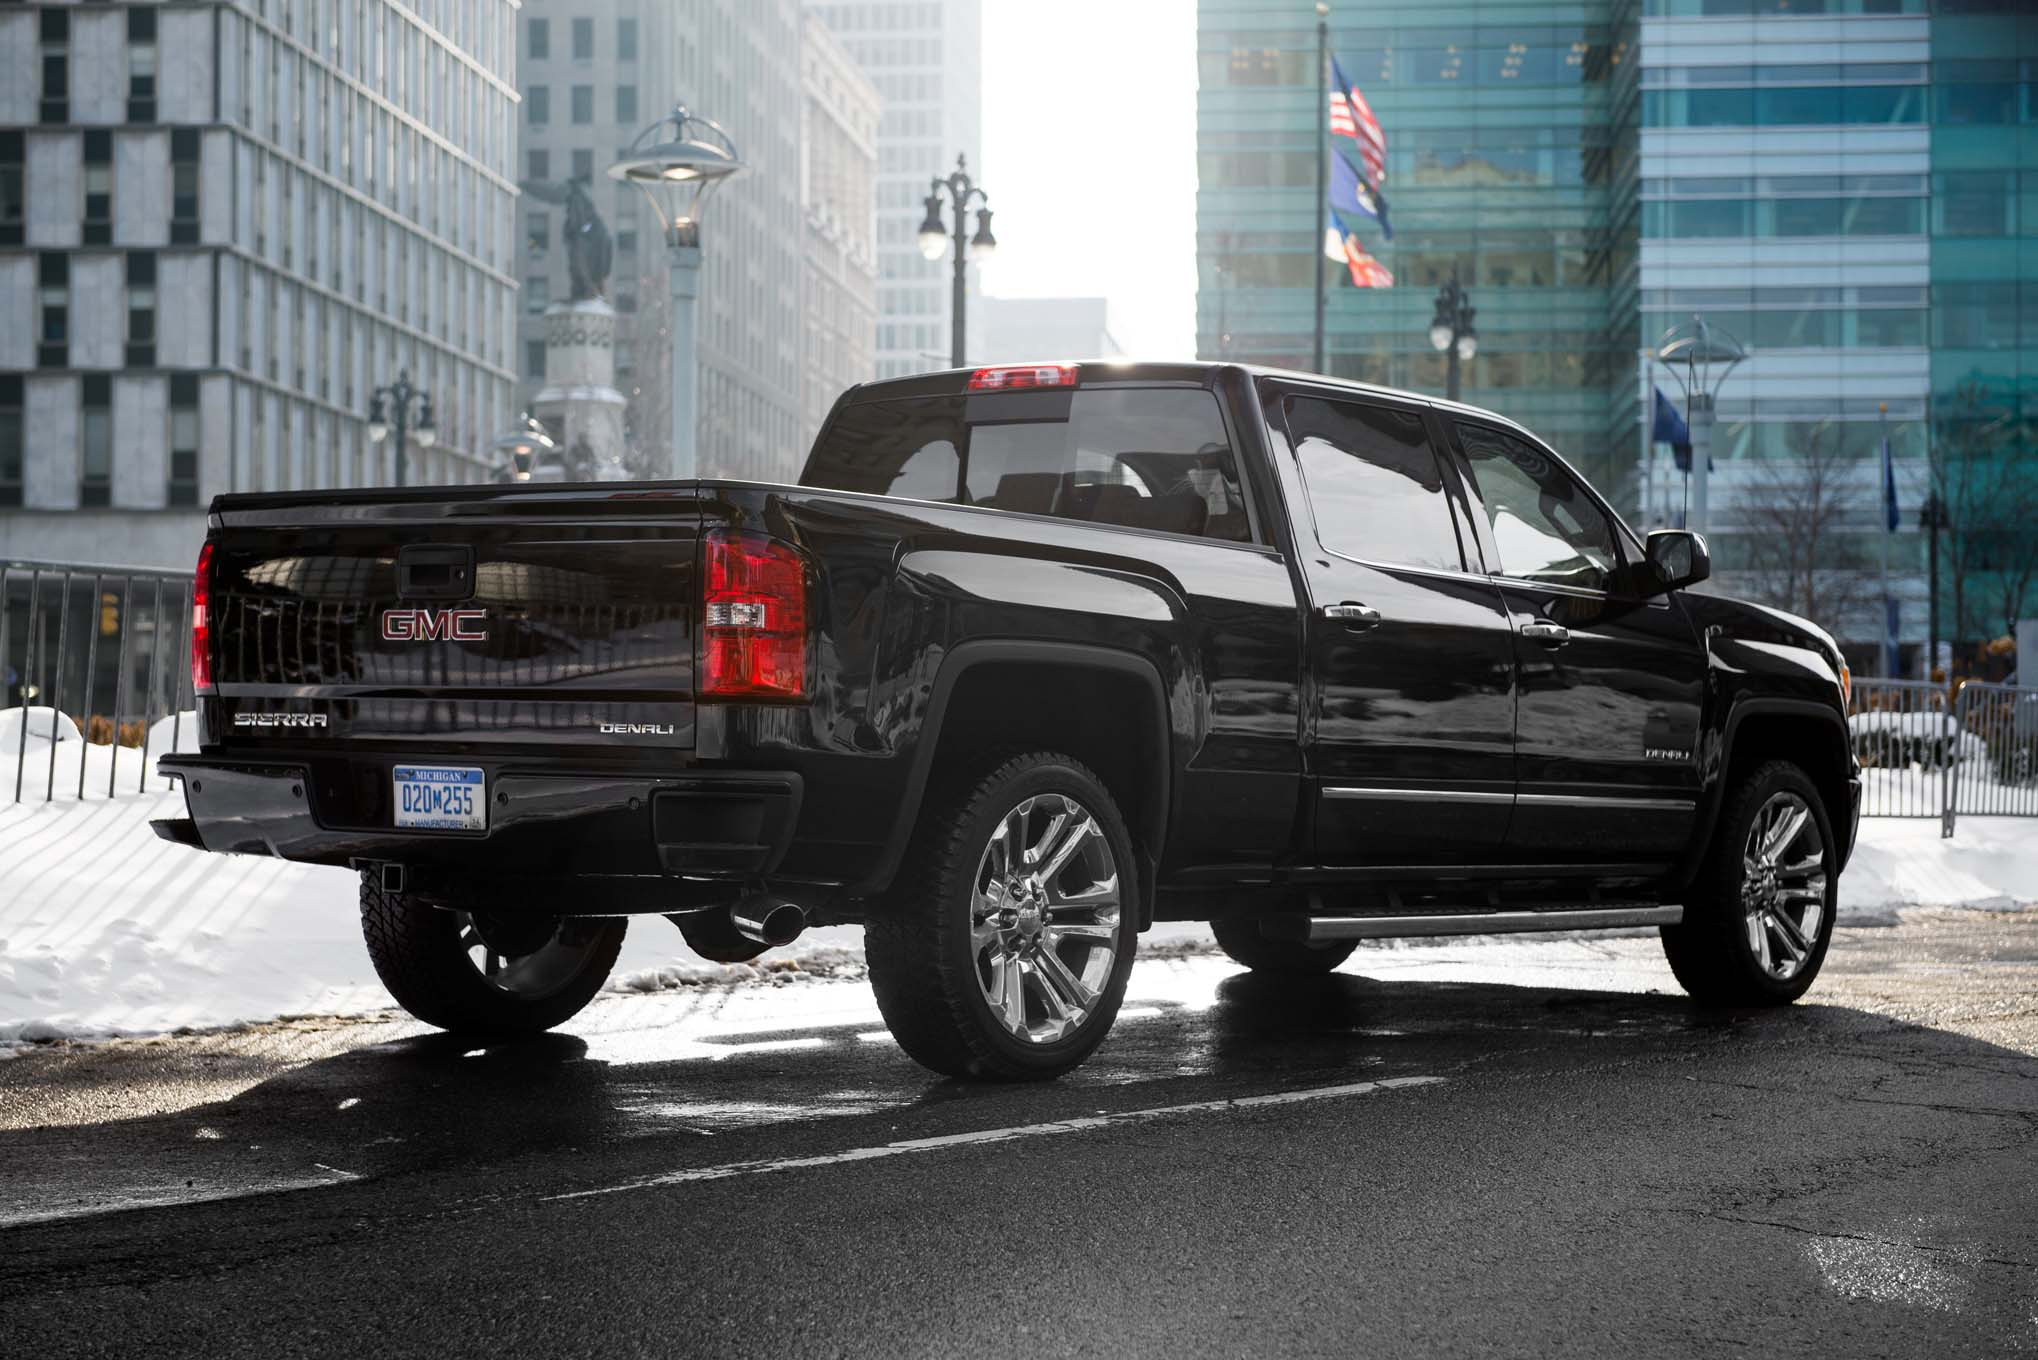 2018 GMC Sierra Denali 1500 Crew Cab photo - 5